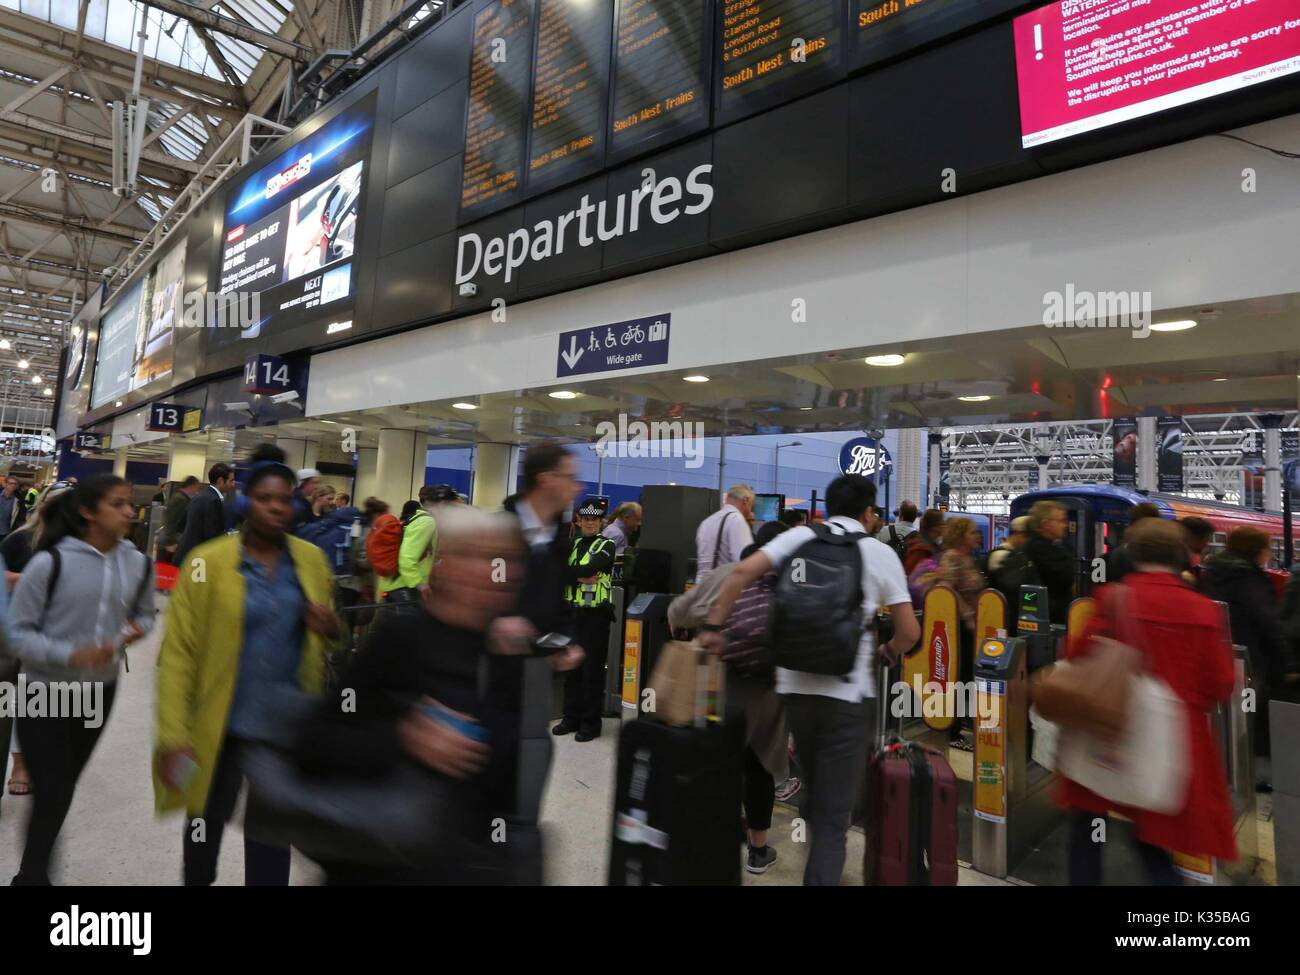 Commuters at Waterloo struggle to get home as engineering works continue at the station. PICTURE BY: NIGEL HOWARD ©   Credit: Evening Standard - Stock Image